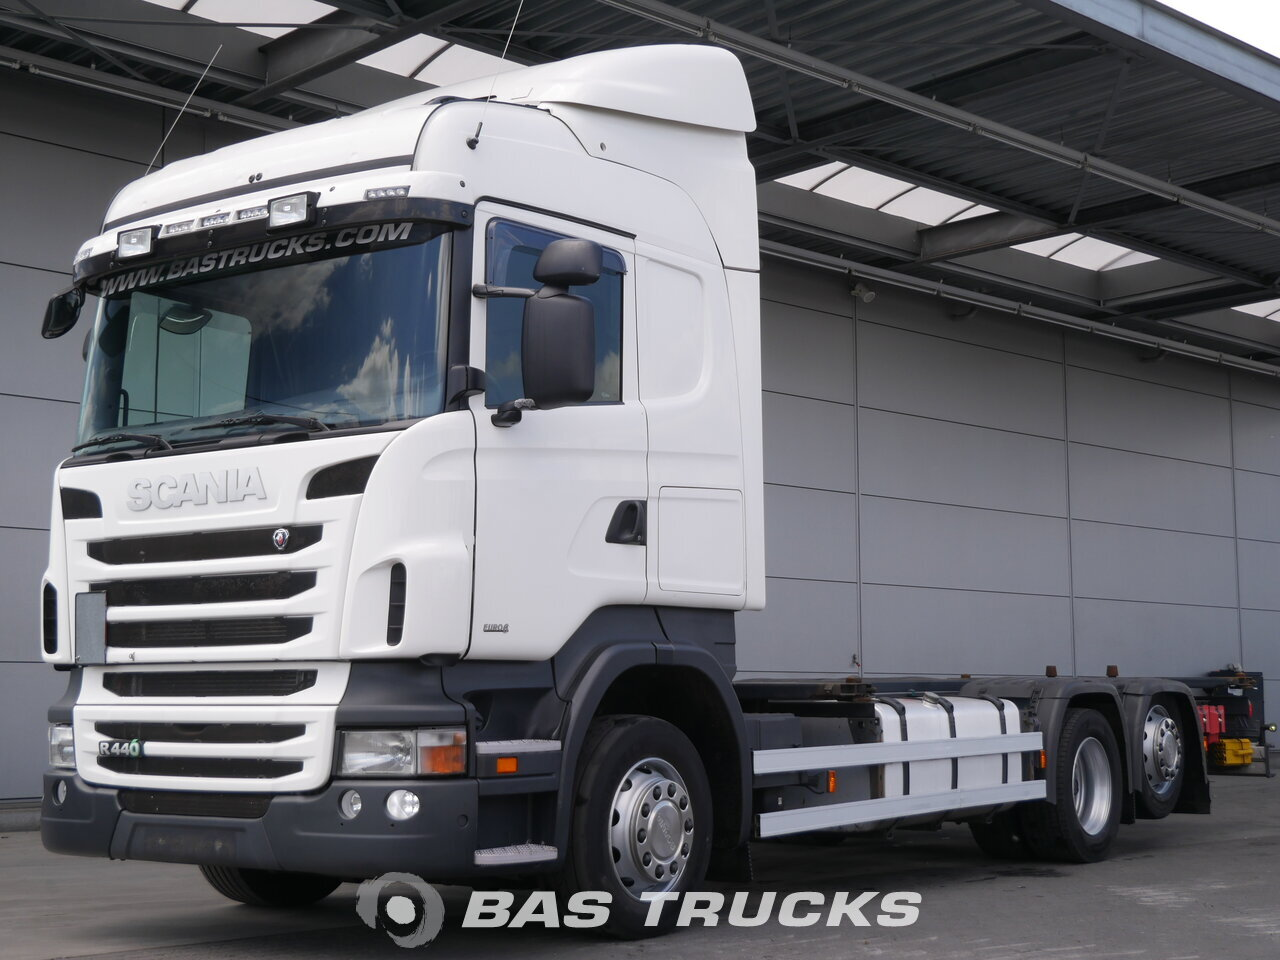 For sale at BAS Trucks: Scania R440 6X2 07/2013